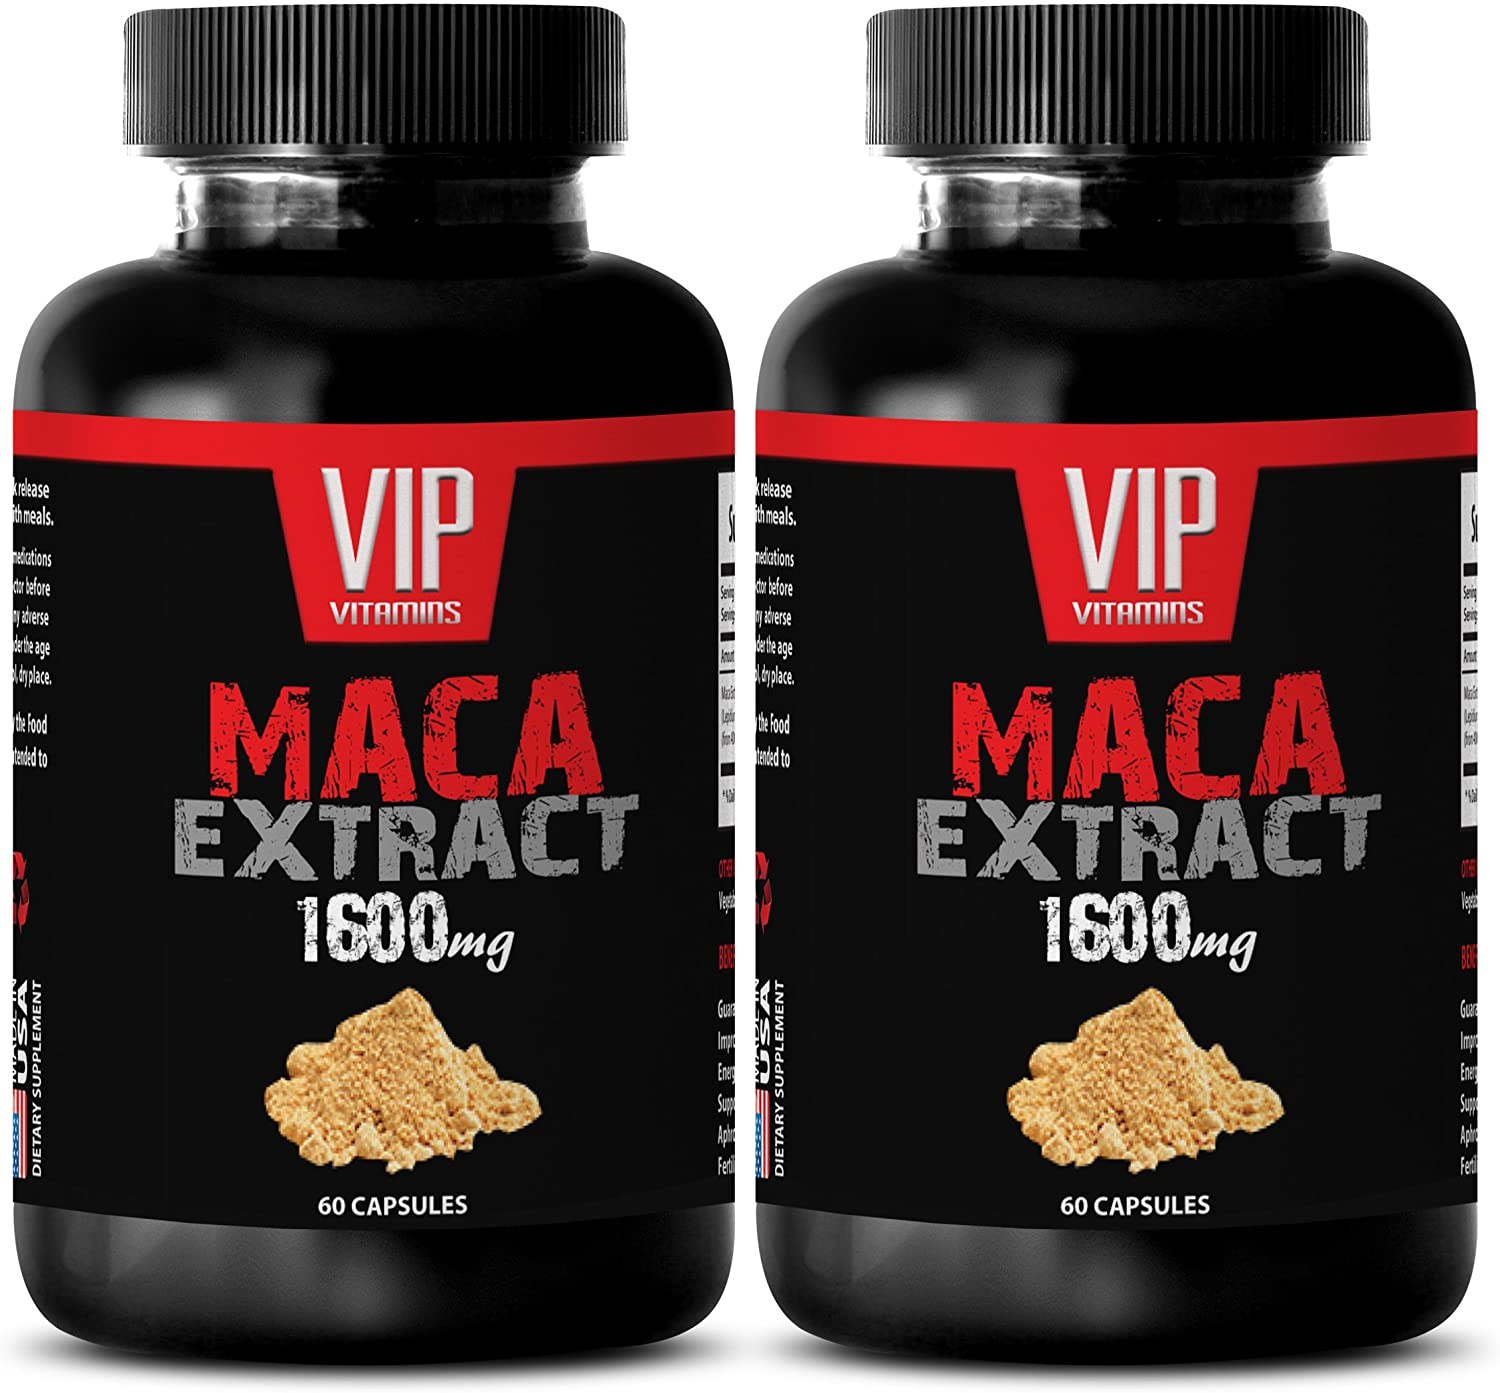 Female Sex Enhancer - MACA Extract 1600MG - maca Fertility - 2 Bottles (120 Capsules)